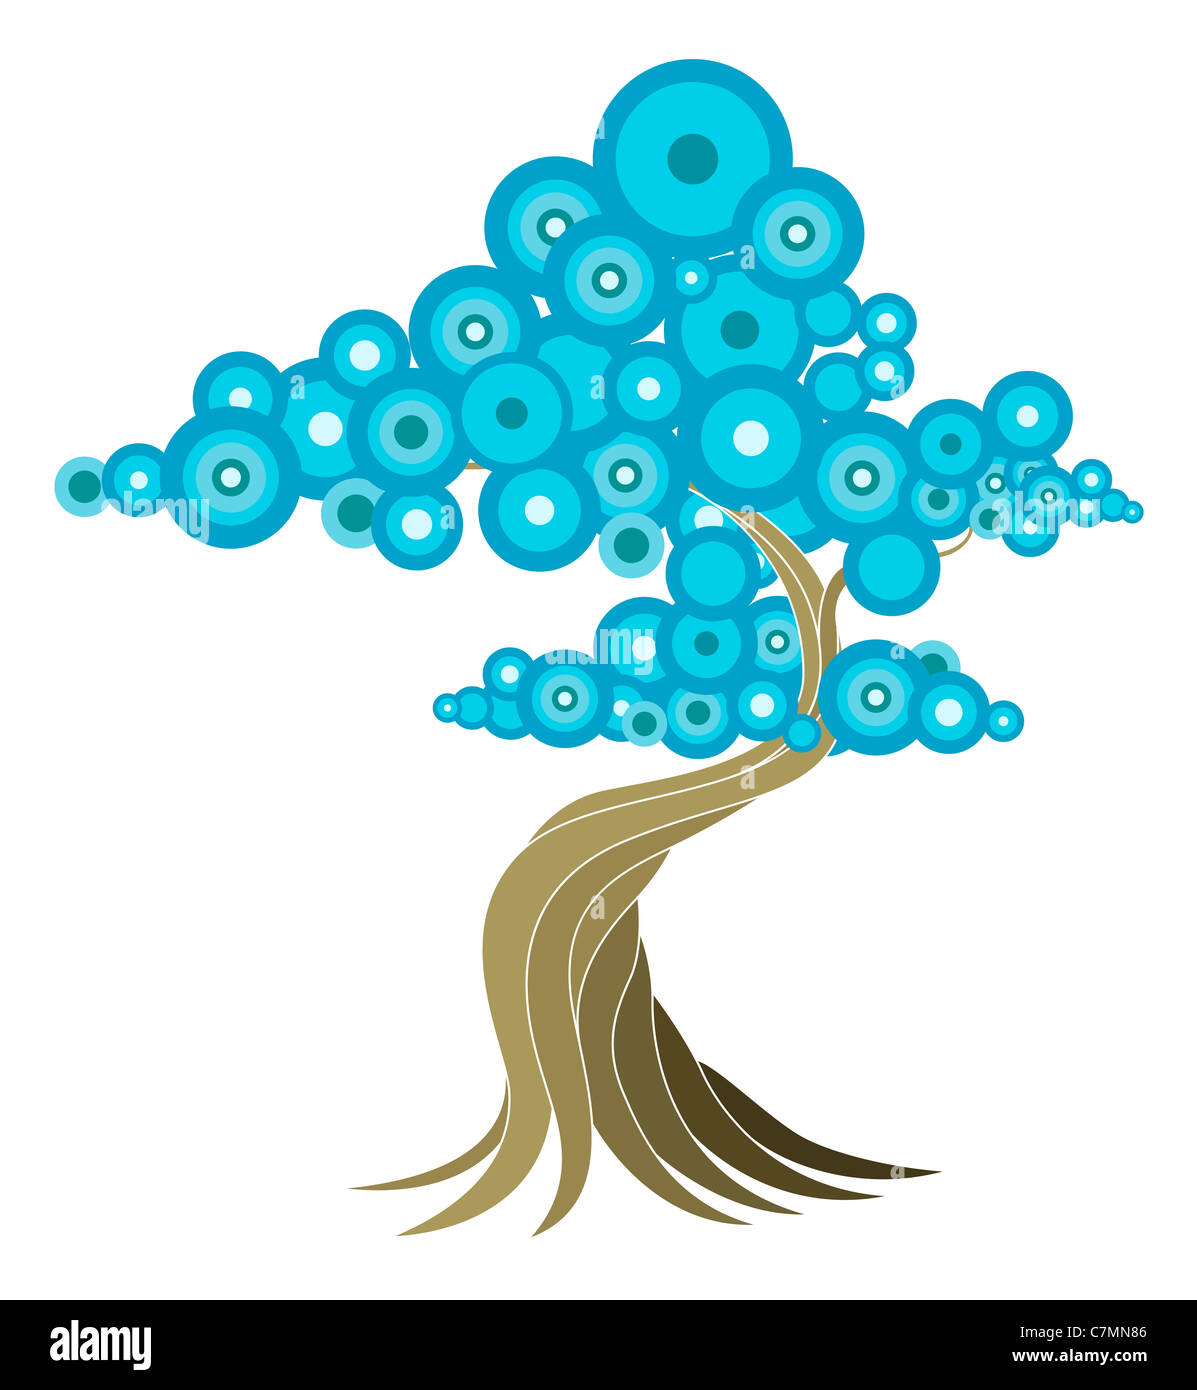 Abstract tree illustration of oriental style tree with blue circles. - Stock Image